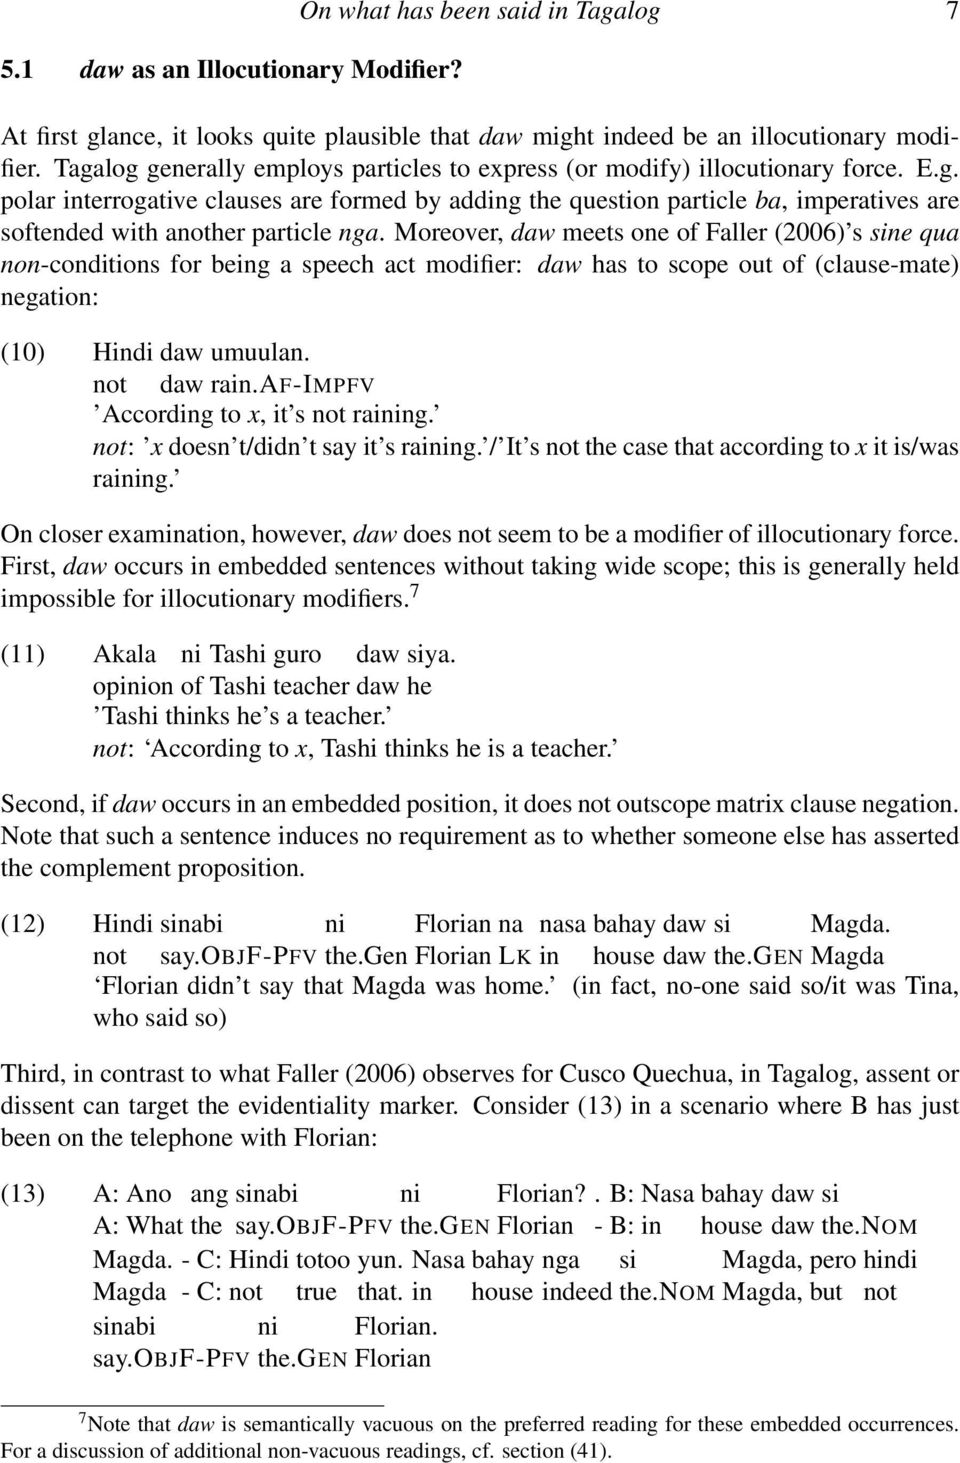 Moreover, daw meets one of Faller (2006) s sine qua non-conditions for being a speech act modifier: daw has to scope out of (clause-mate) negation: (10) Hindi daw not daw umuulan. rain.